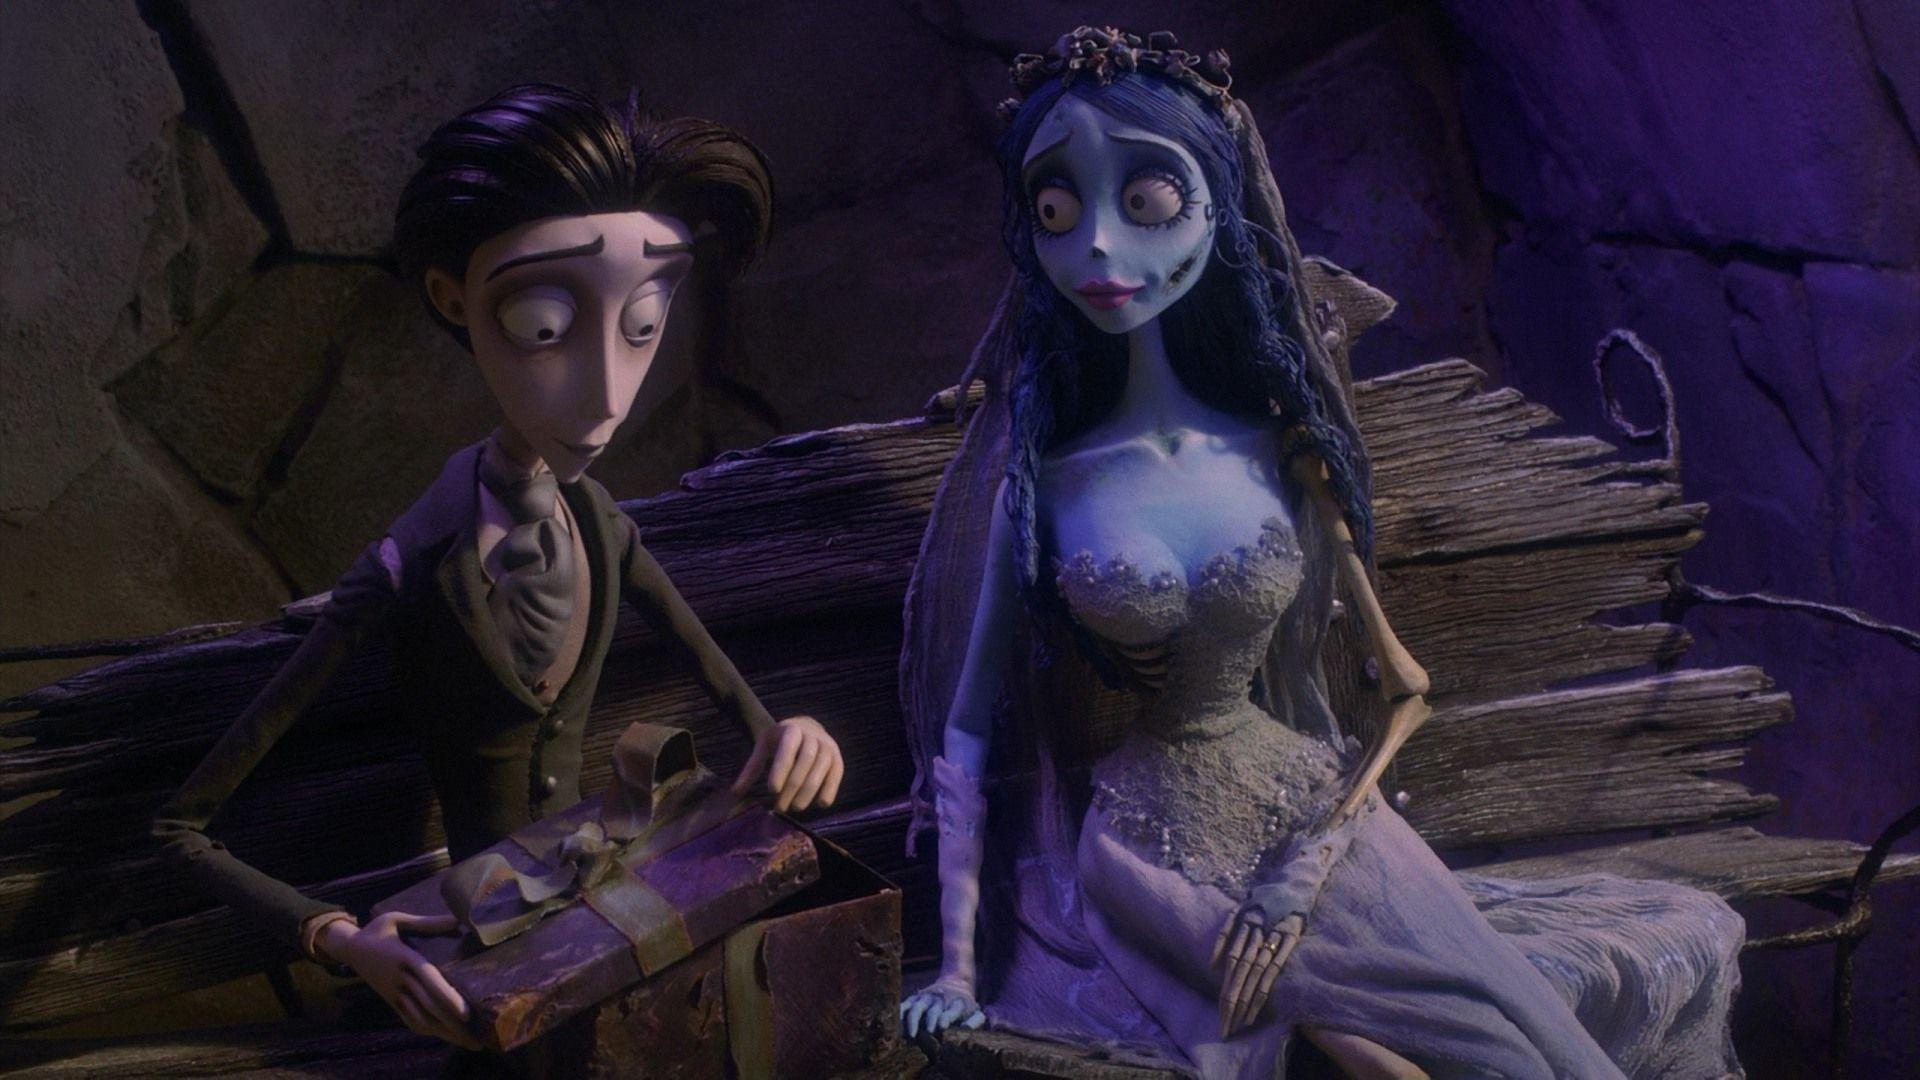 Corpse Bride Wallpapers High Quality 18152 HD Pictures